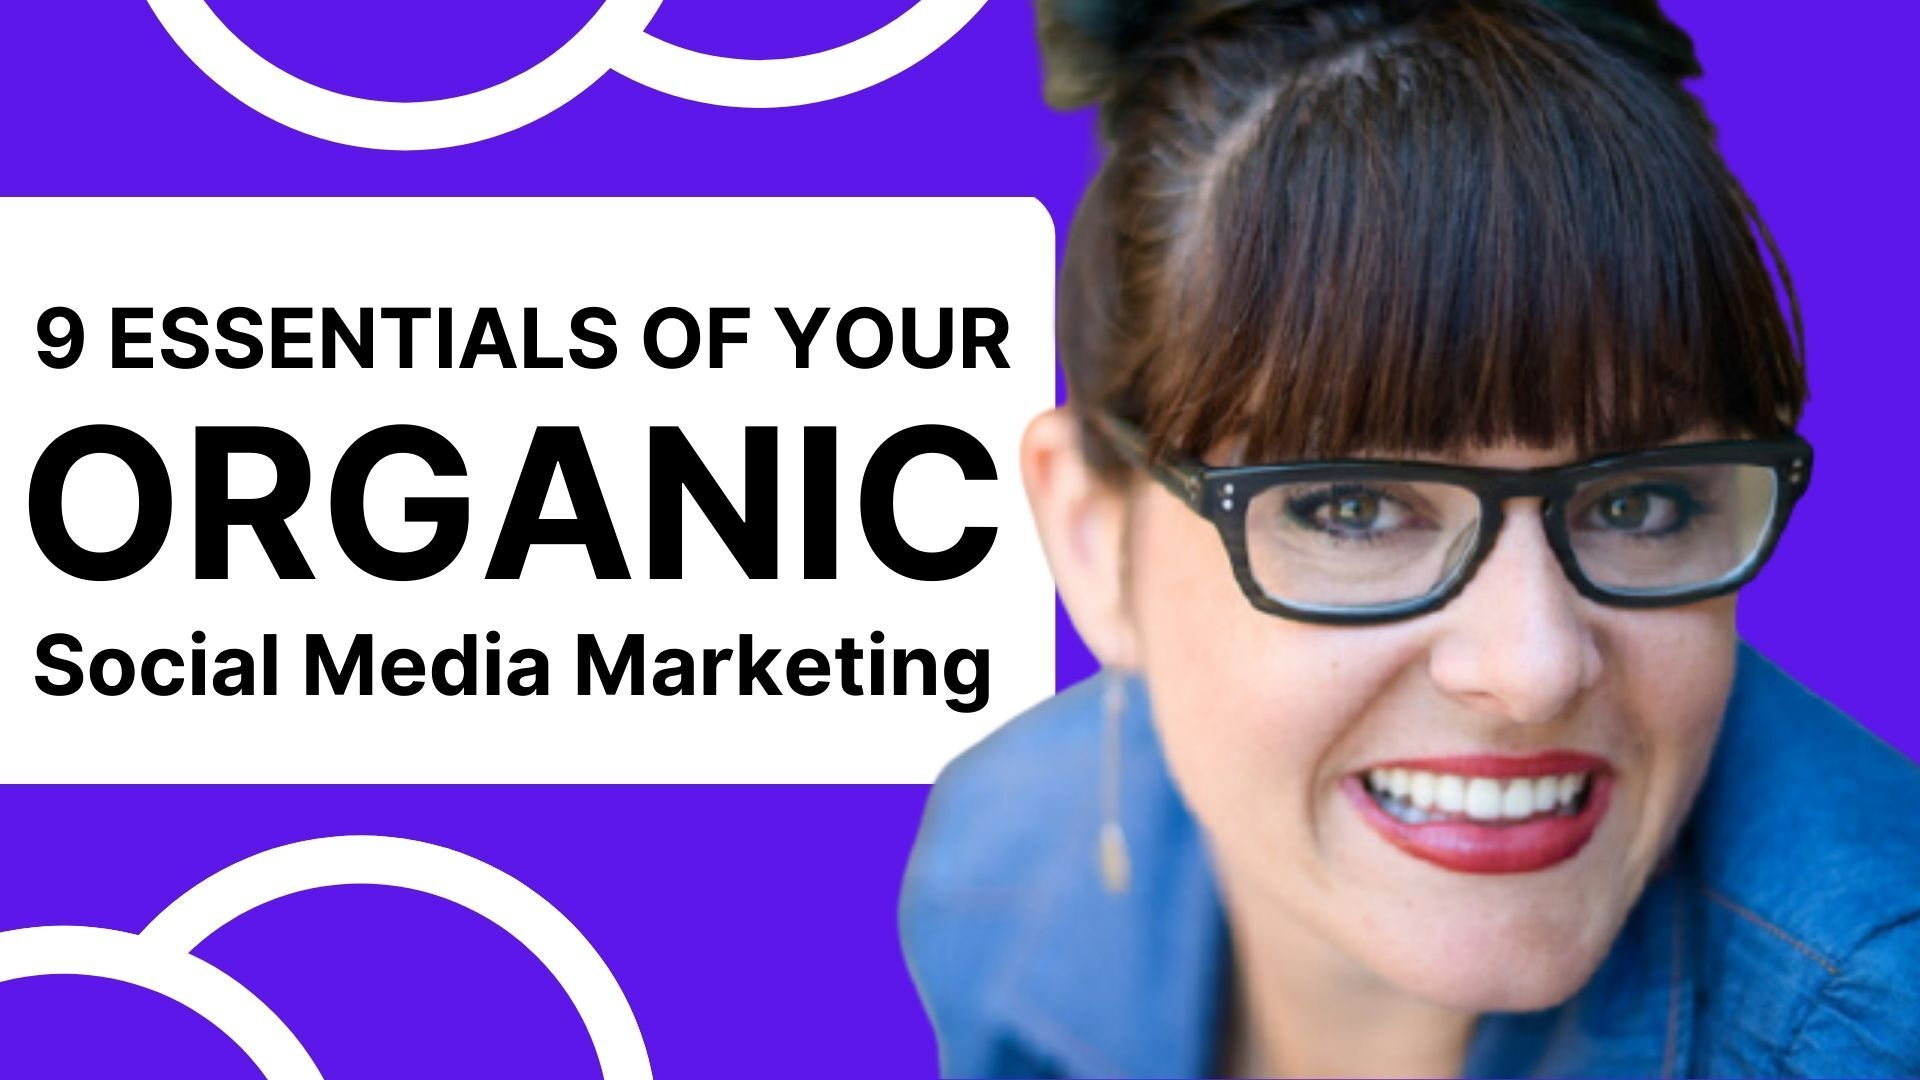 9 Essentials of Your Organic Social Media Marketing - The Prepared Performer